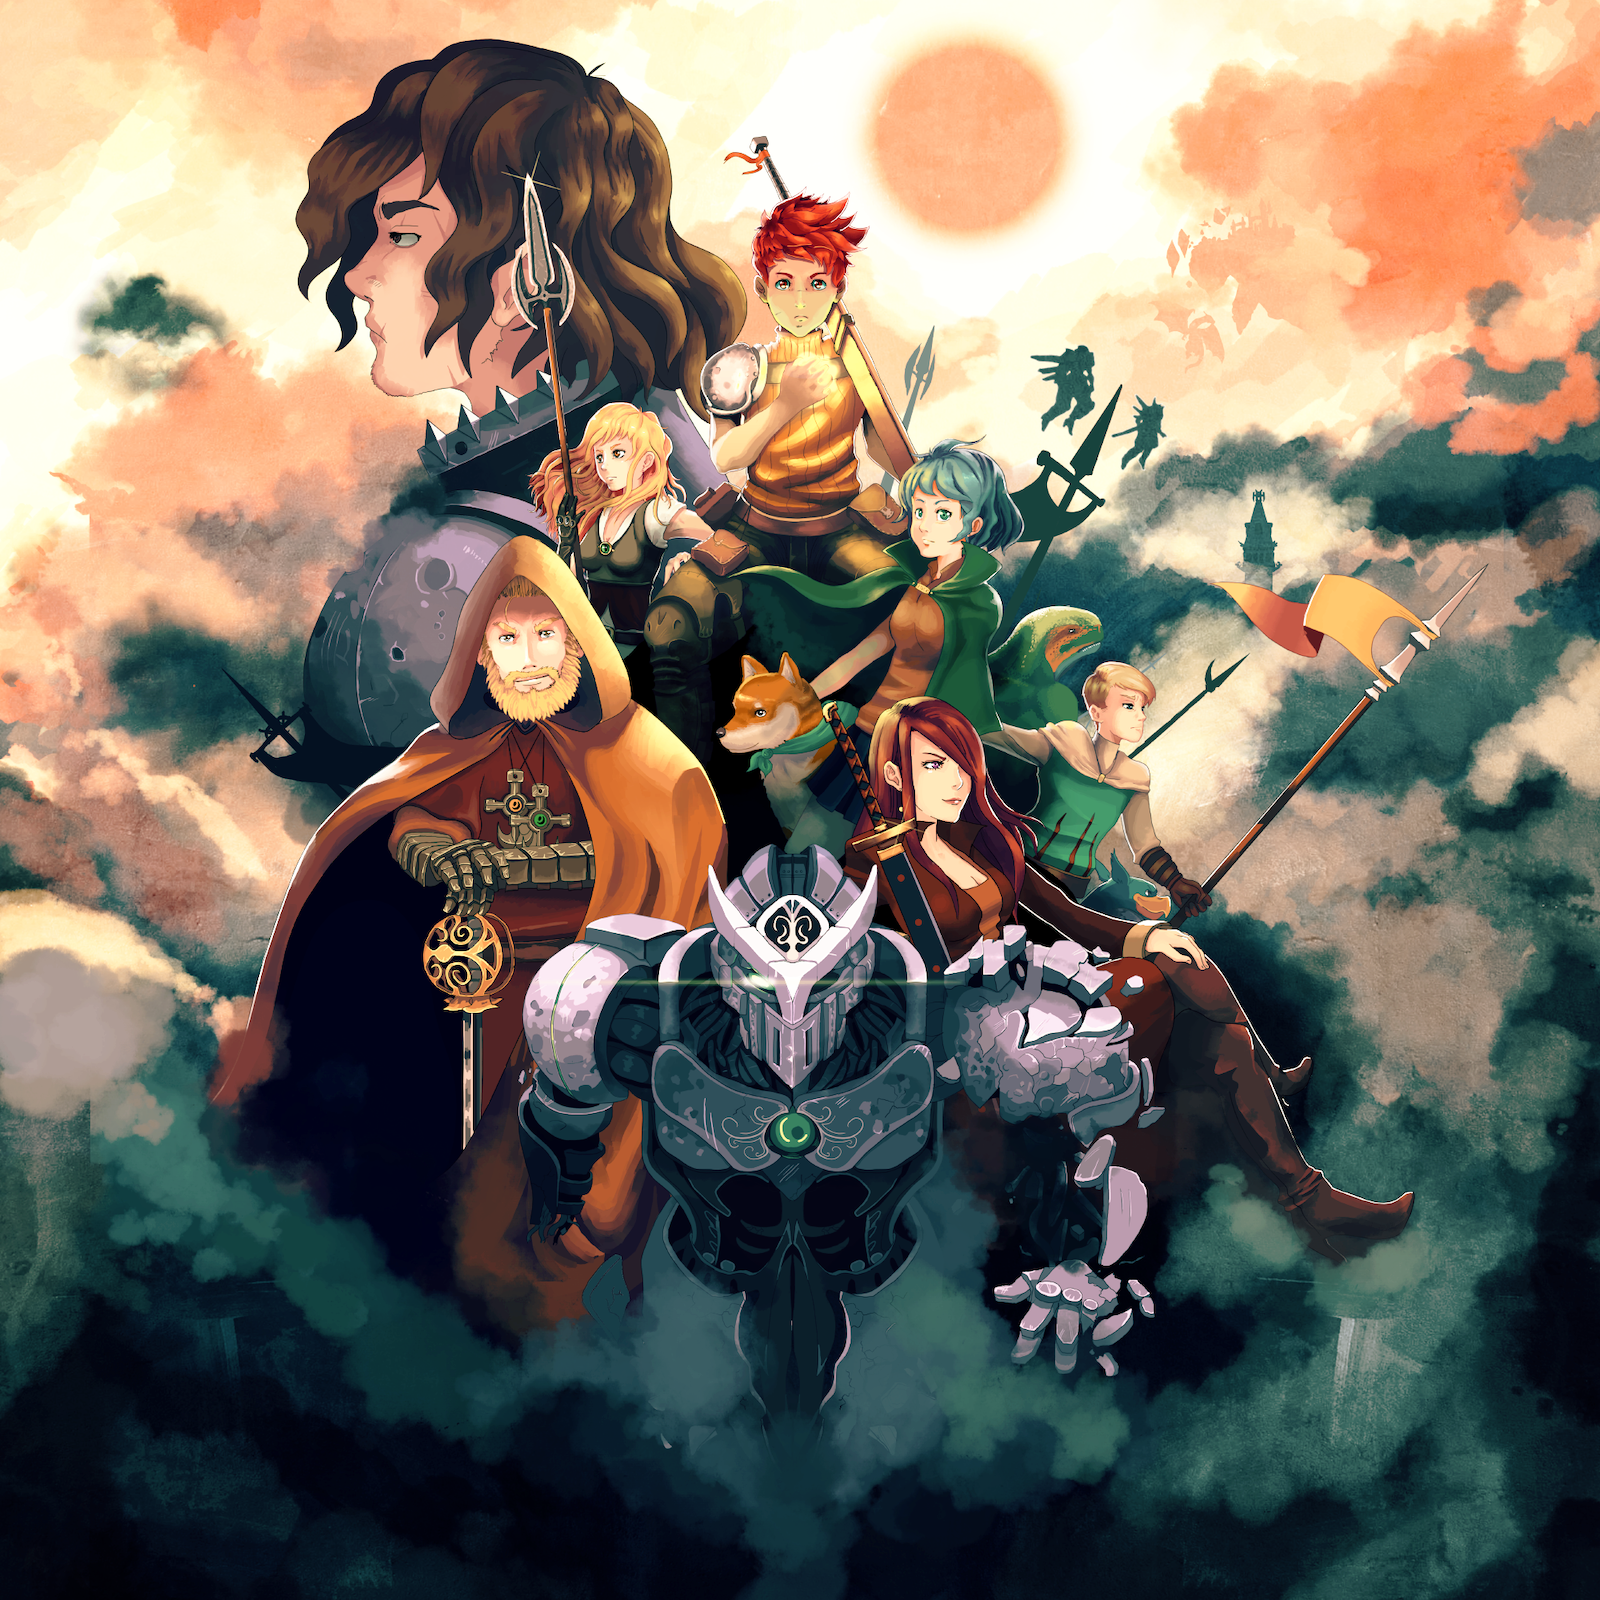 Chained Echoes - a 16bit fantasy RPG with mechs and airships